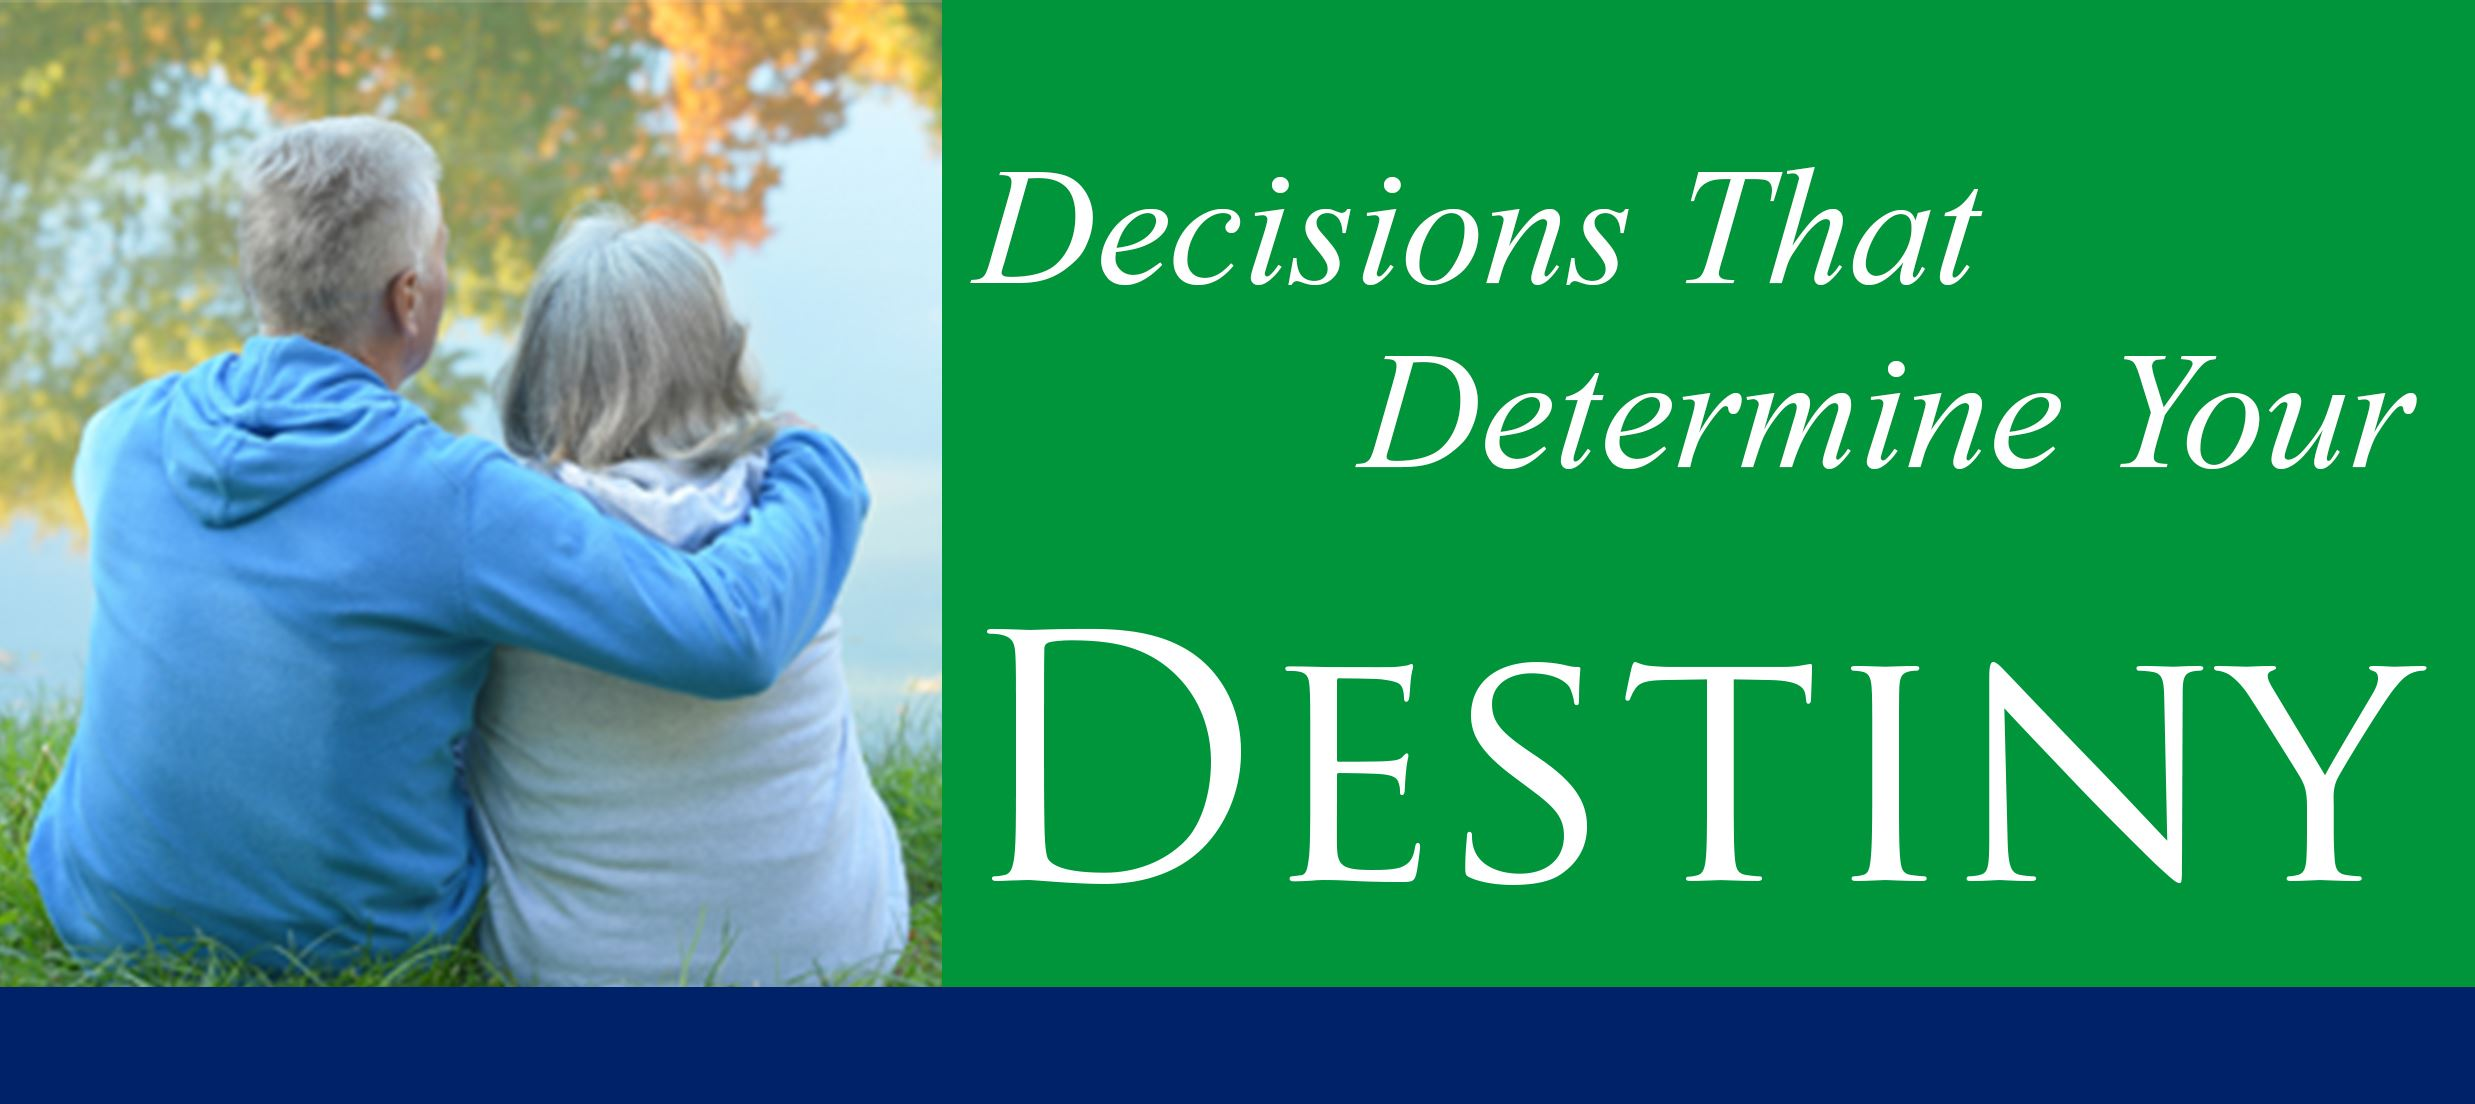 Decisions that Determine Your Destiny Page Link